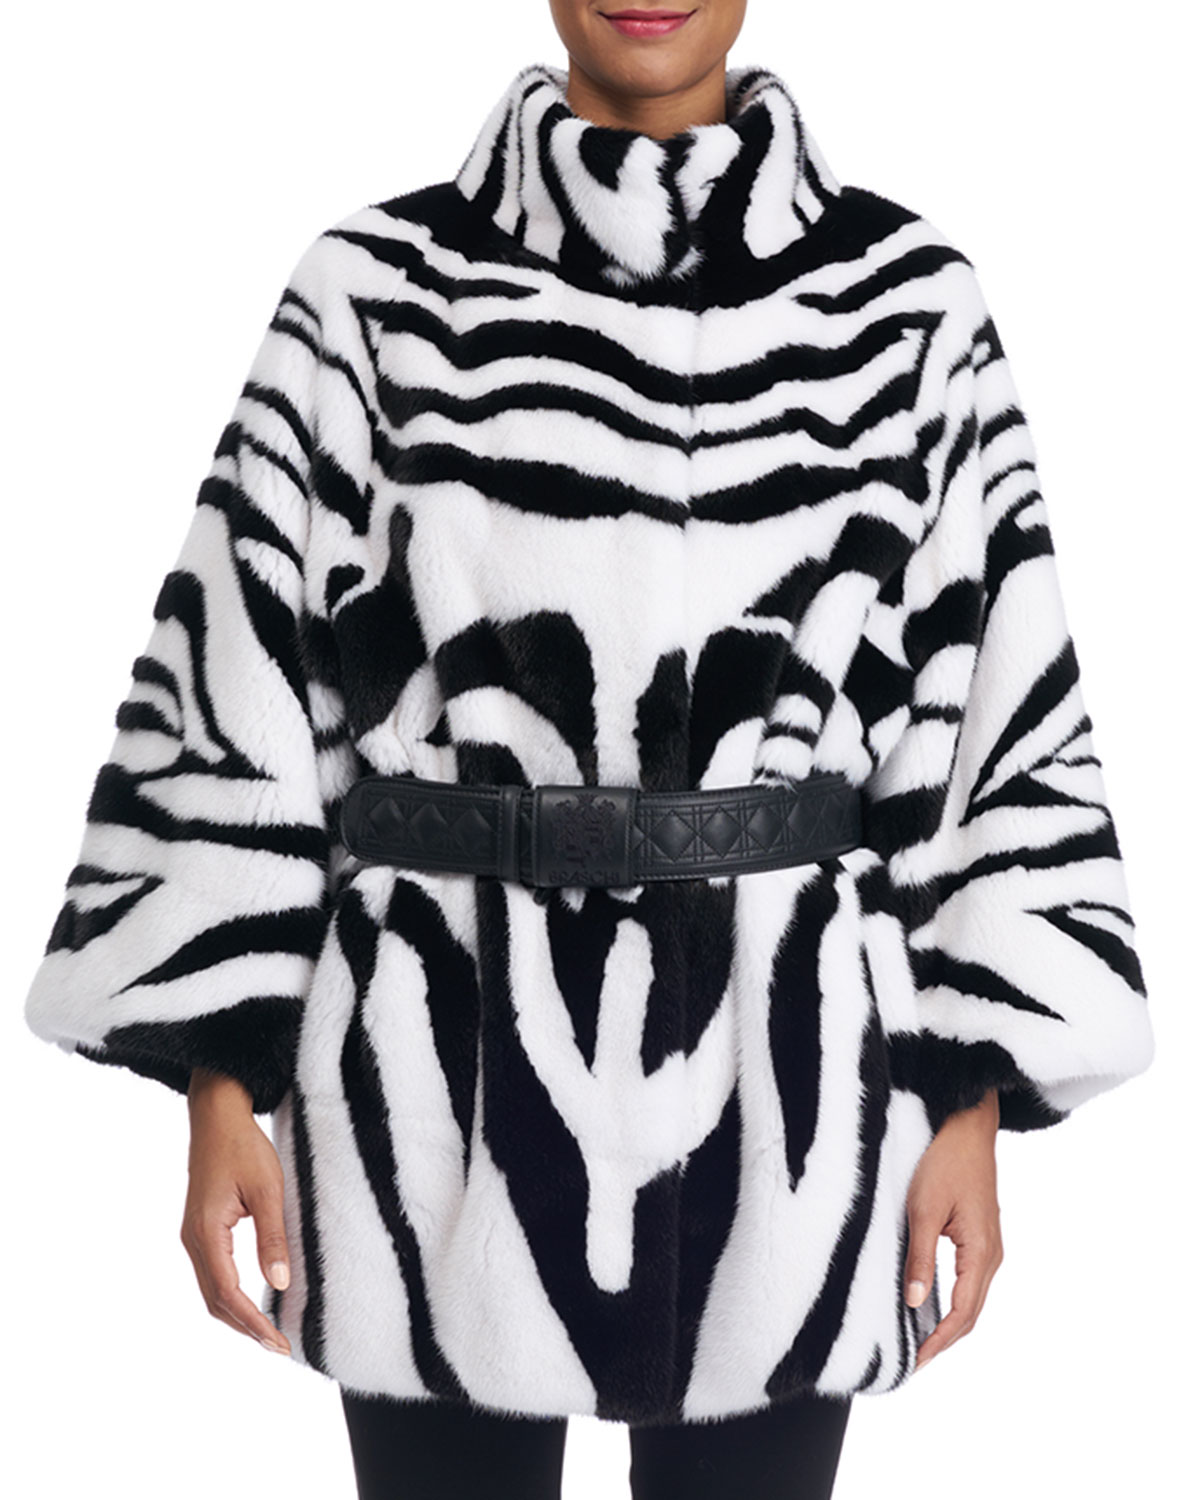 Zebra-Print Mink Fur Coat with Belt